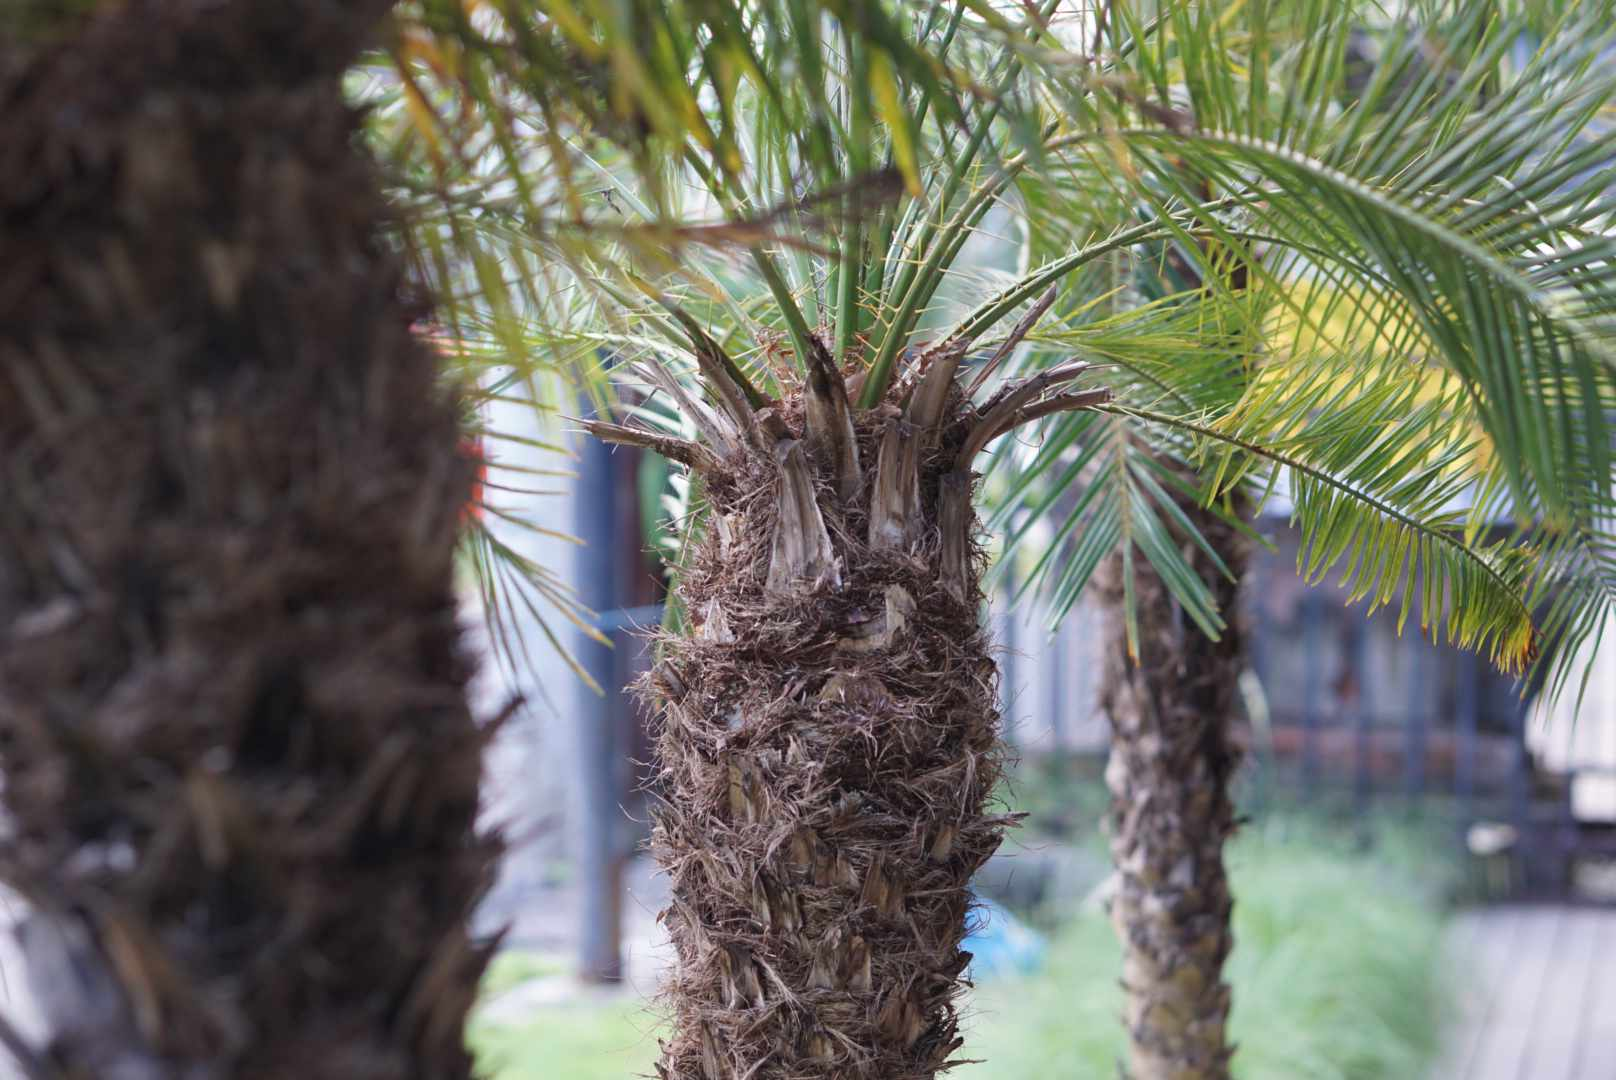 Robellini palm trees with spiky trunk and fronds growing from top